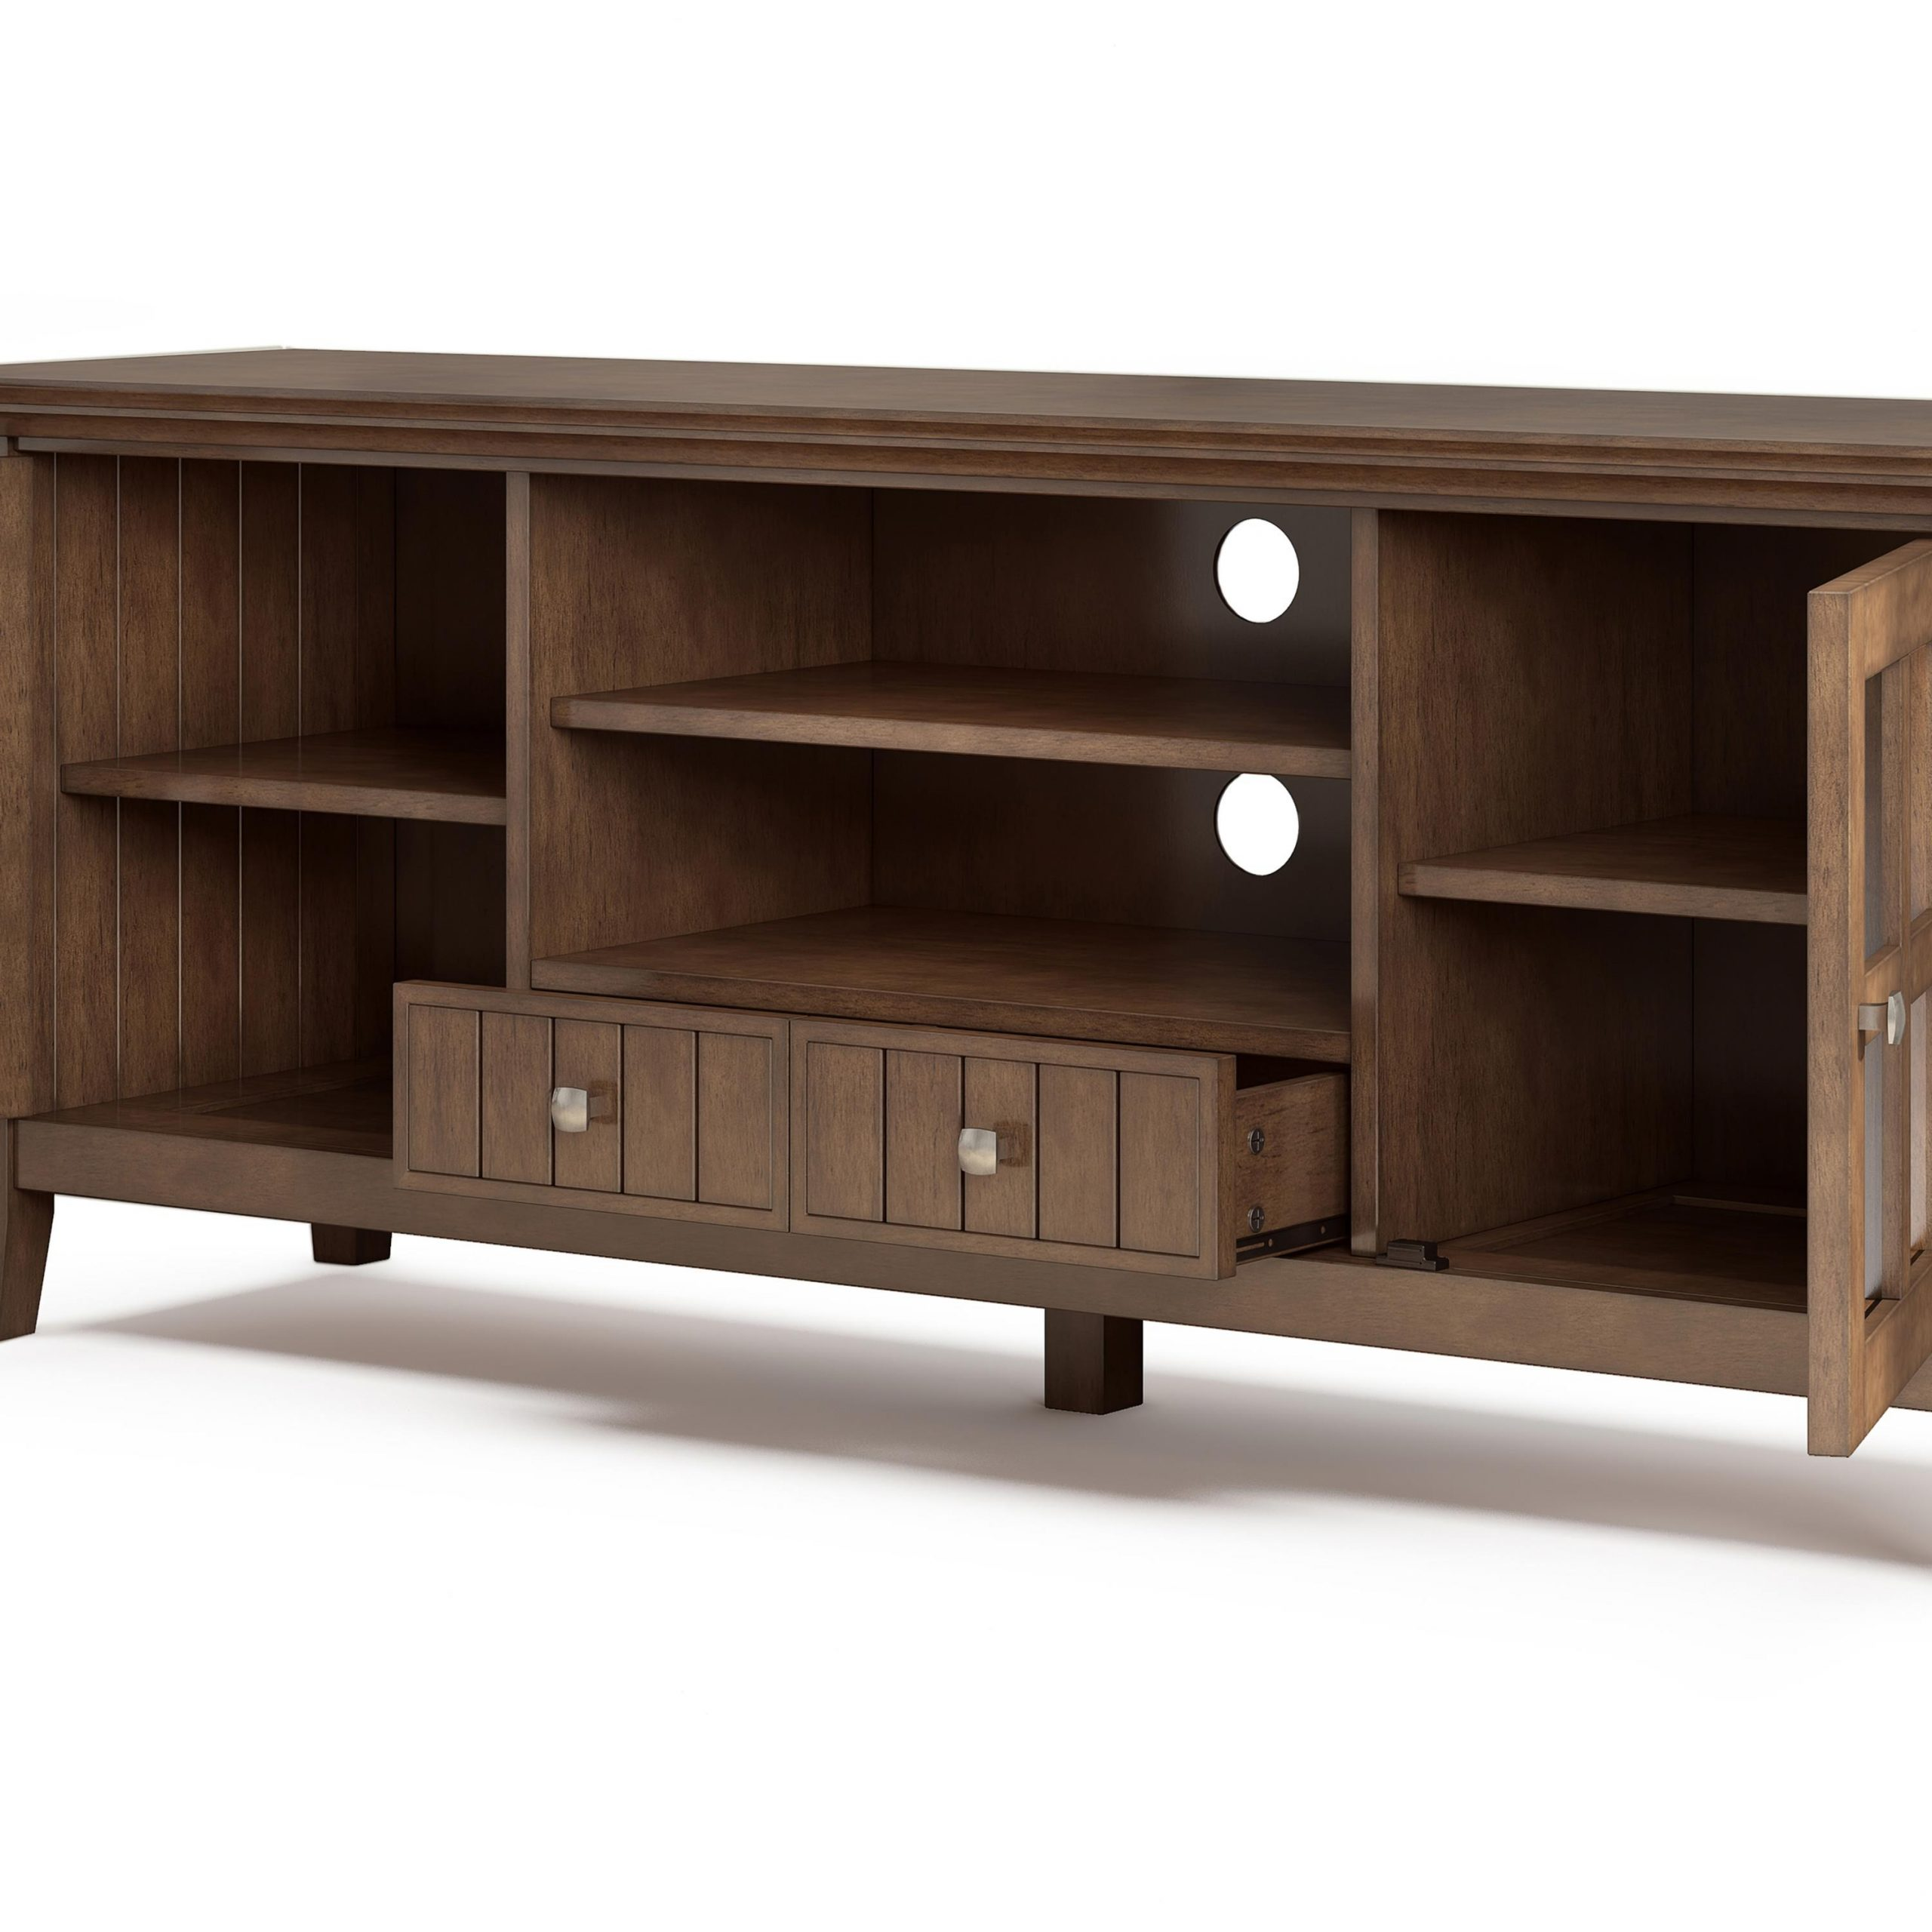 2017 Greenwich Wide Tv Stands In Simpli Home Acadian Solid Wood 60 Inch Wide Rustic Tv (View 10 of 10)